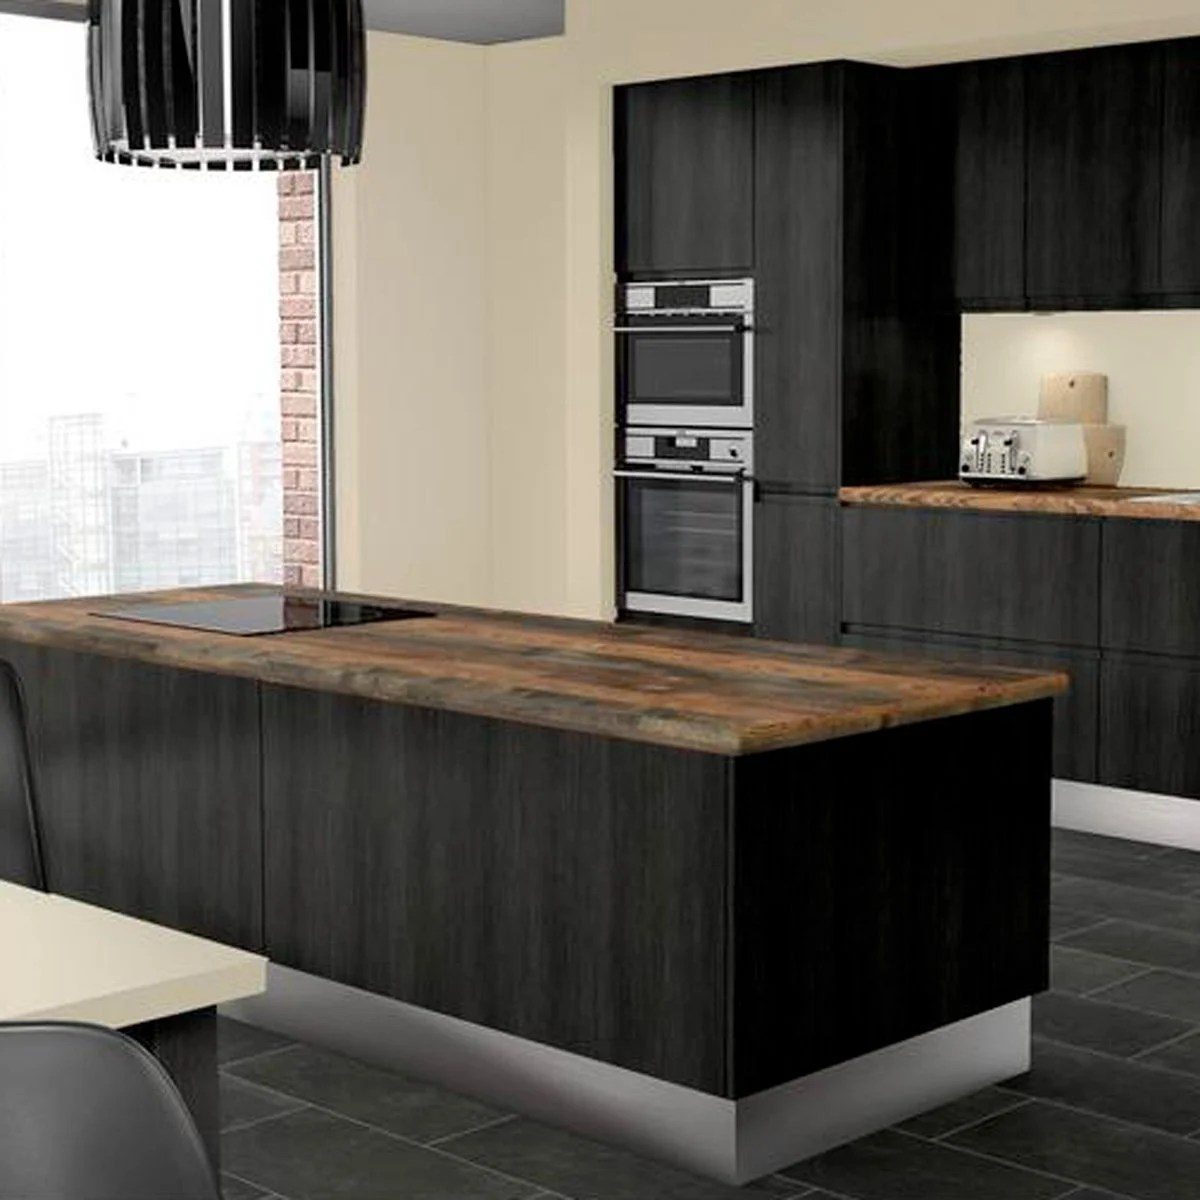 Laminate Countertop Ideas That Don T Look Like Laminate Family Handyman